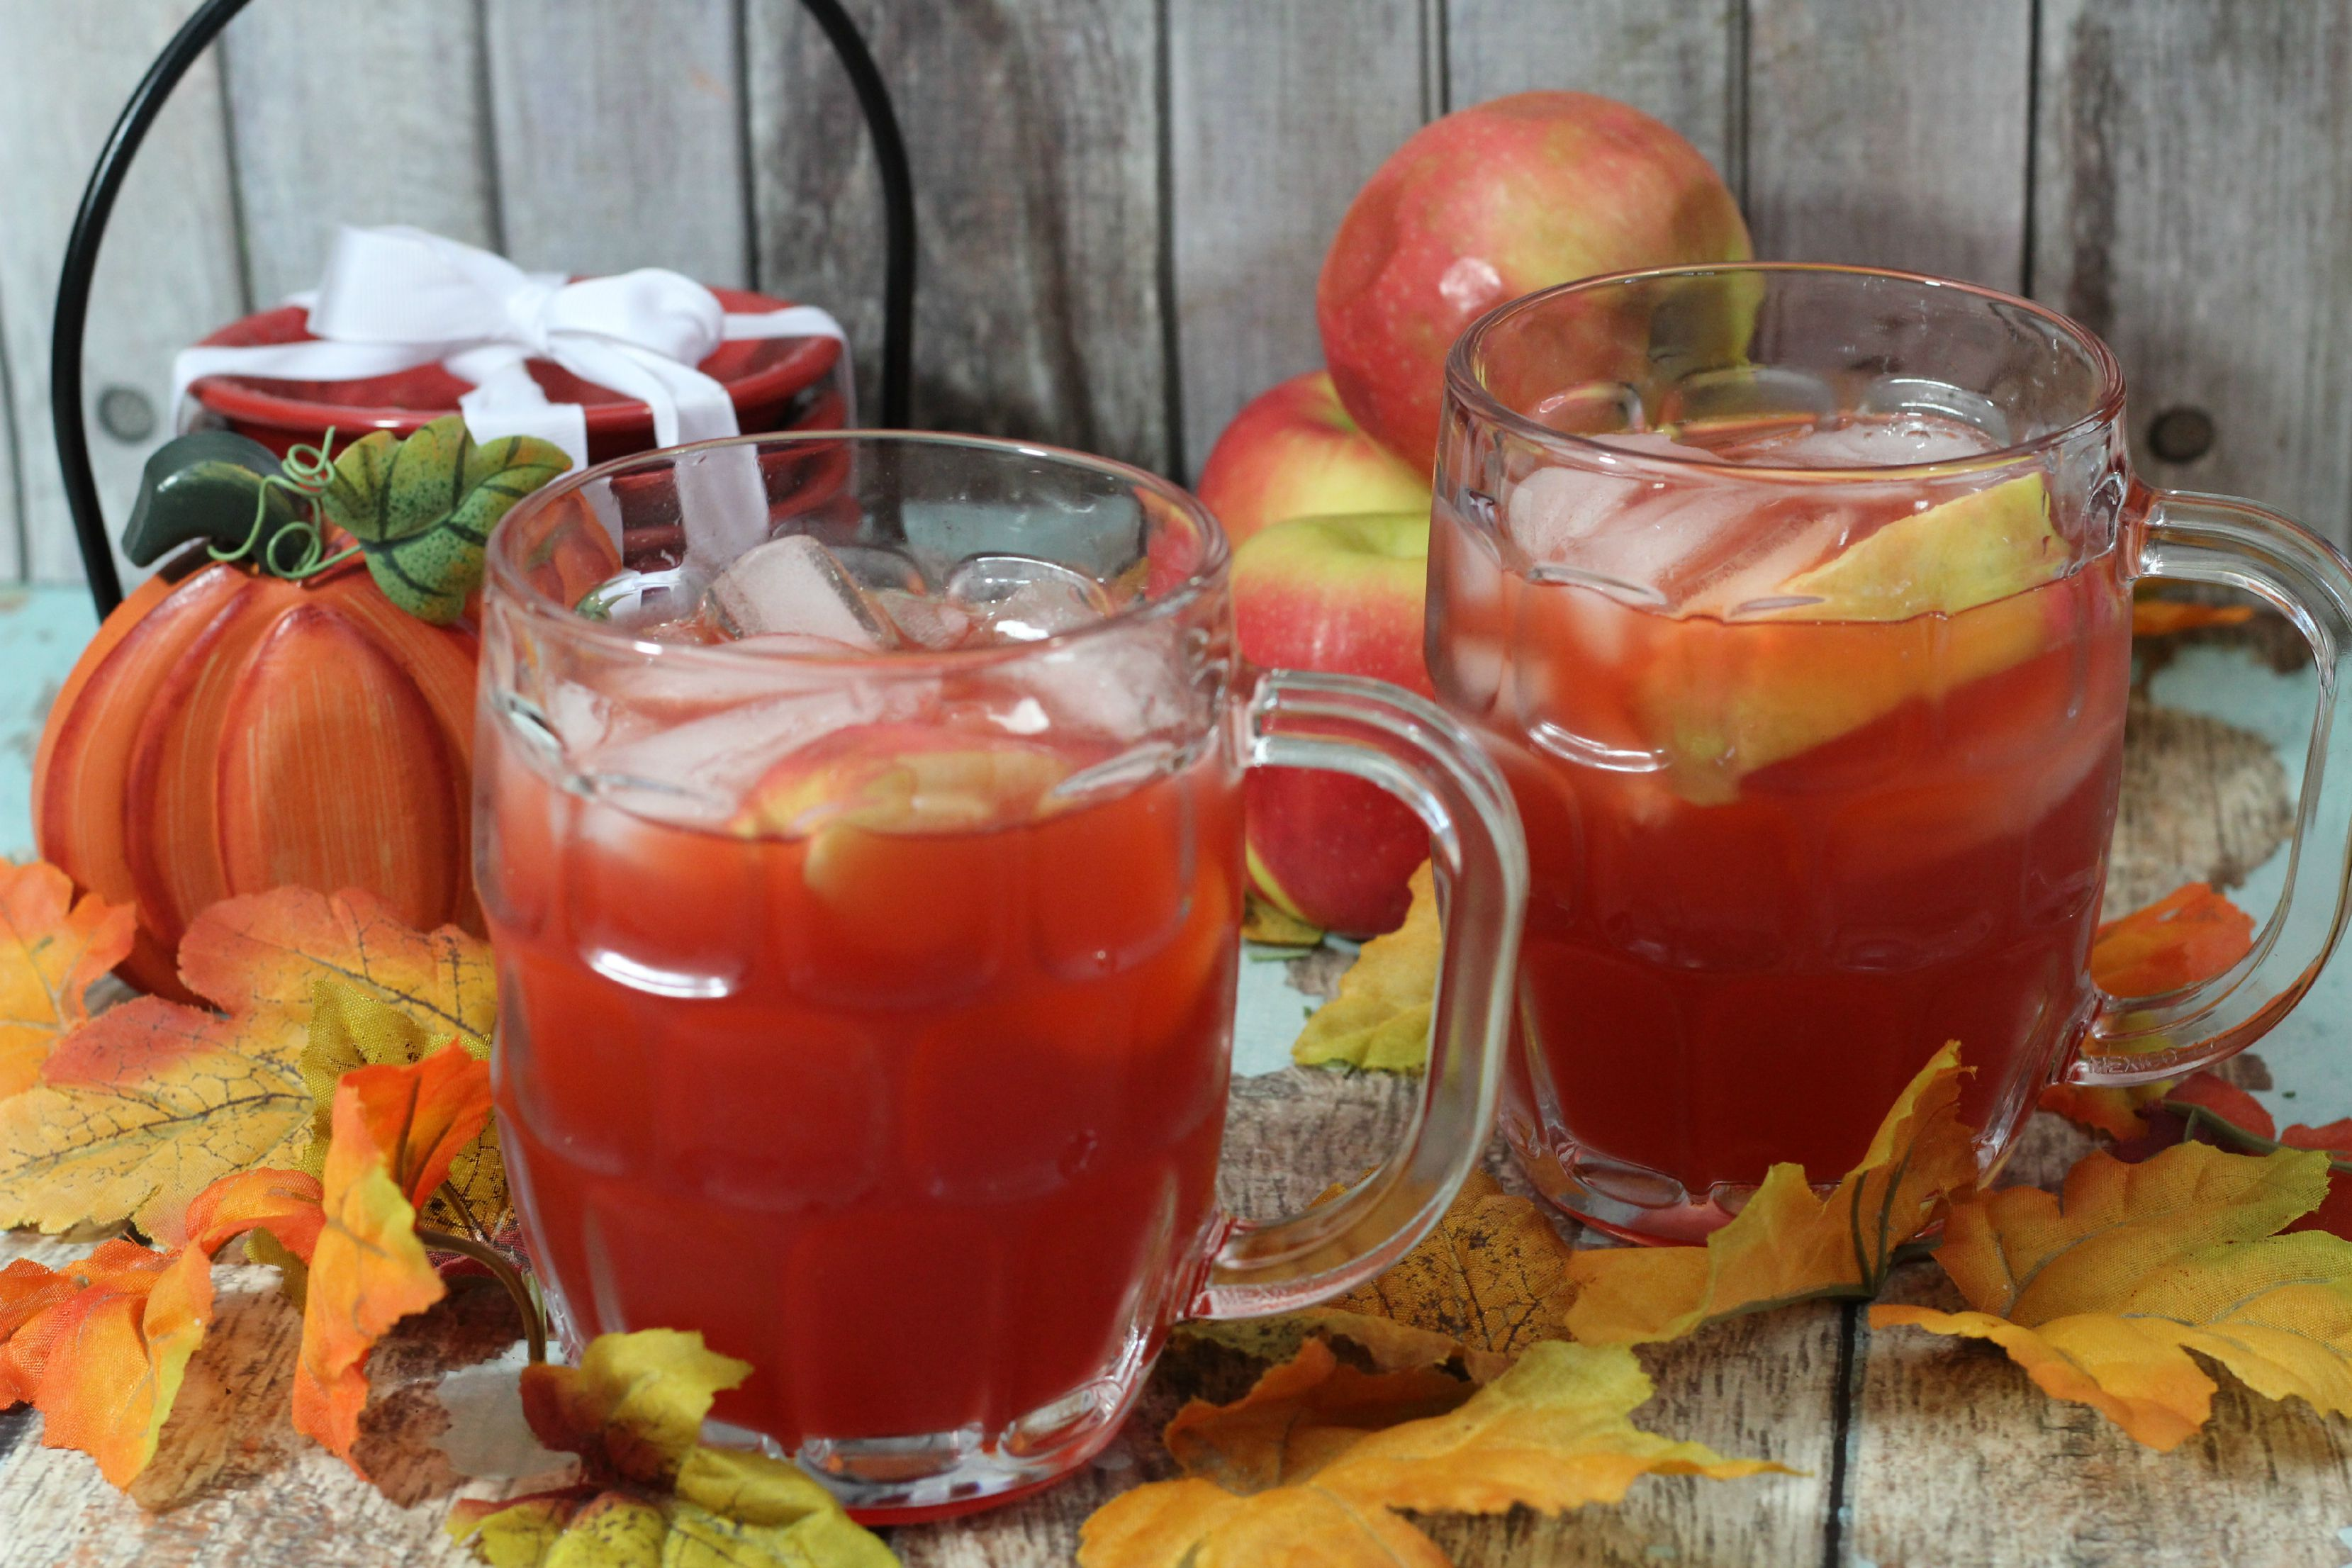 Want to make homemade apple cider? Want to make a fun Halloween drink that is perfect for any party? Use this homemade apple cider recipe to make Poison Apple Cider. A spiced apple cider that is perfect as a mocktail or Halloween cocktail.